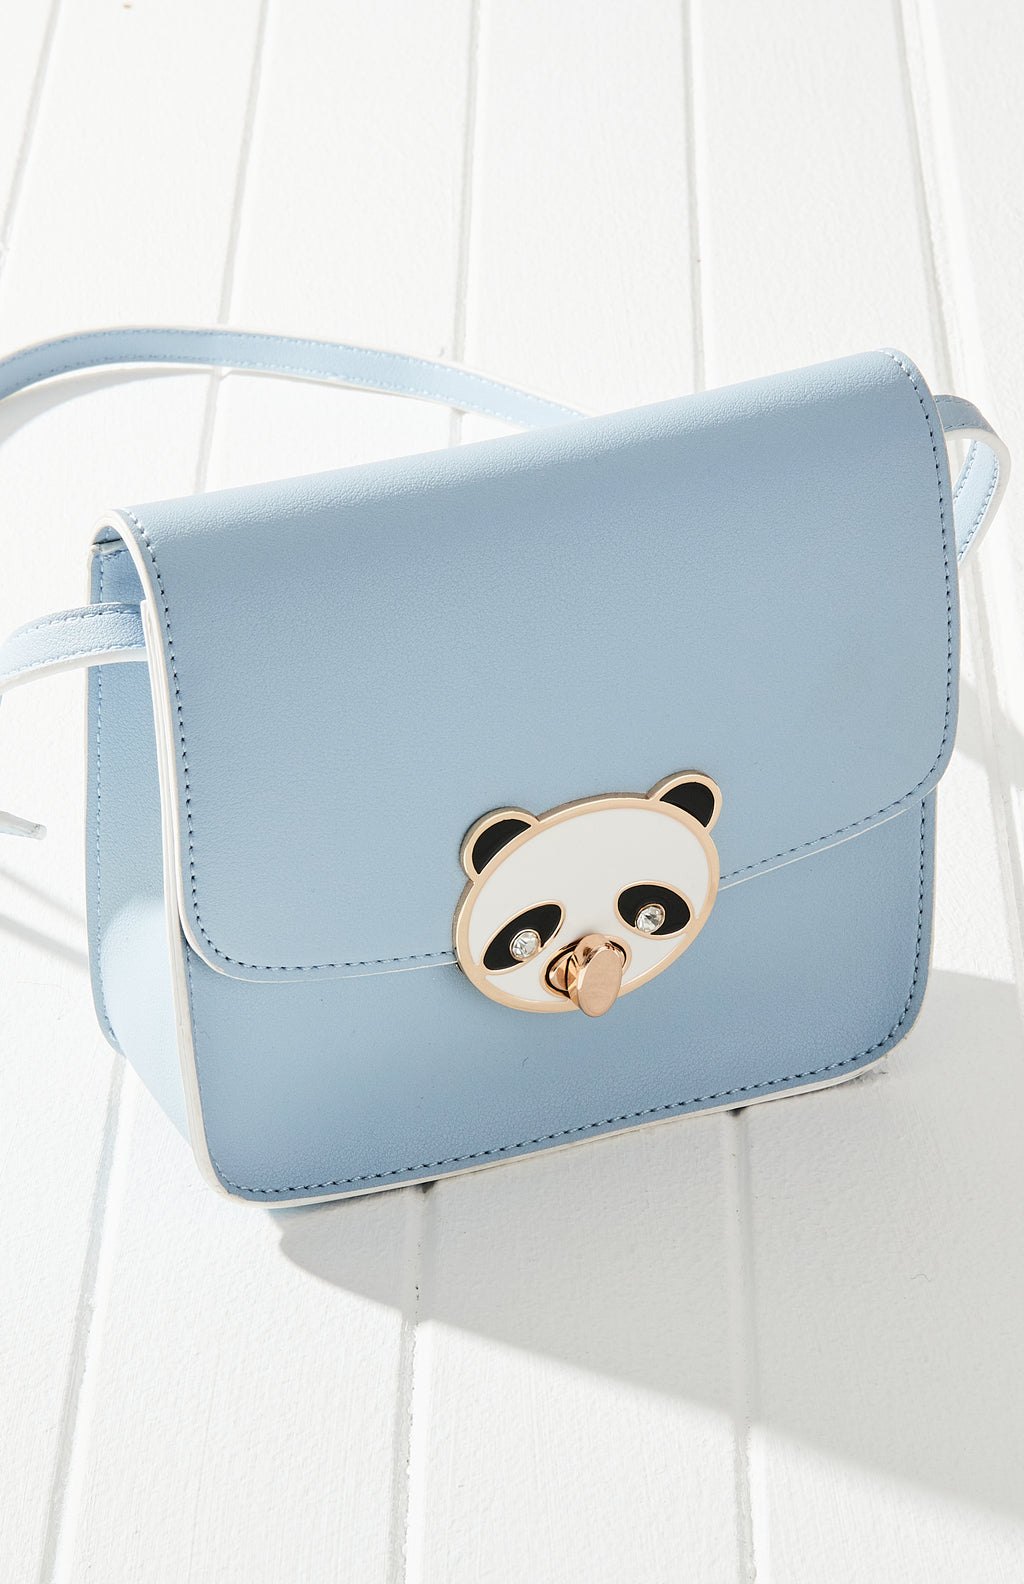 panda lock blue vegan leather crossbody bag